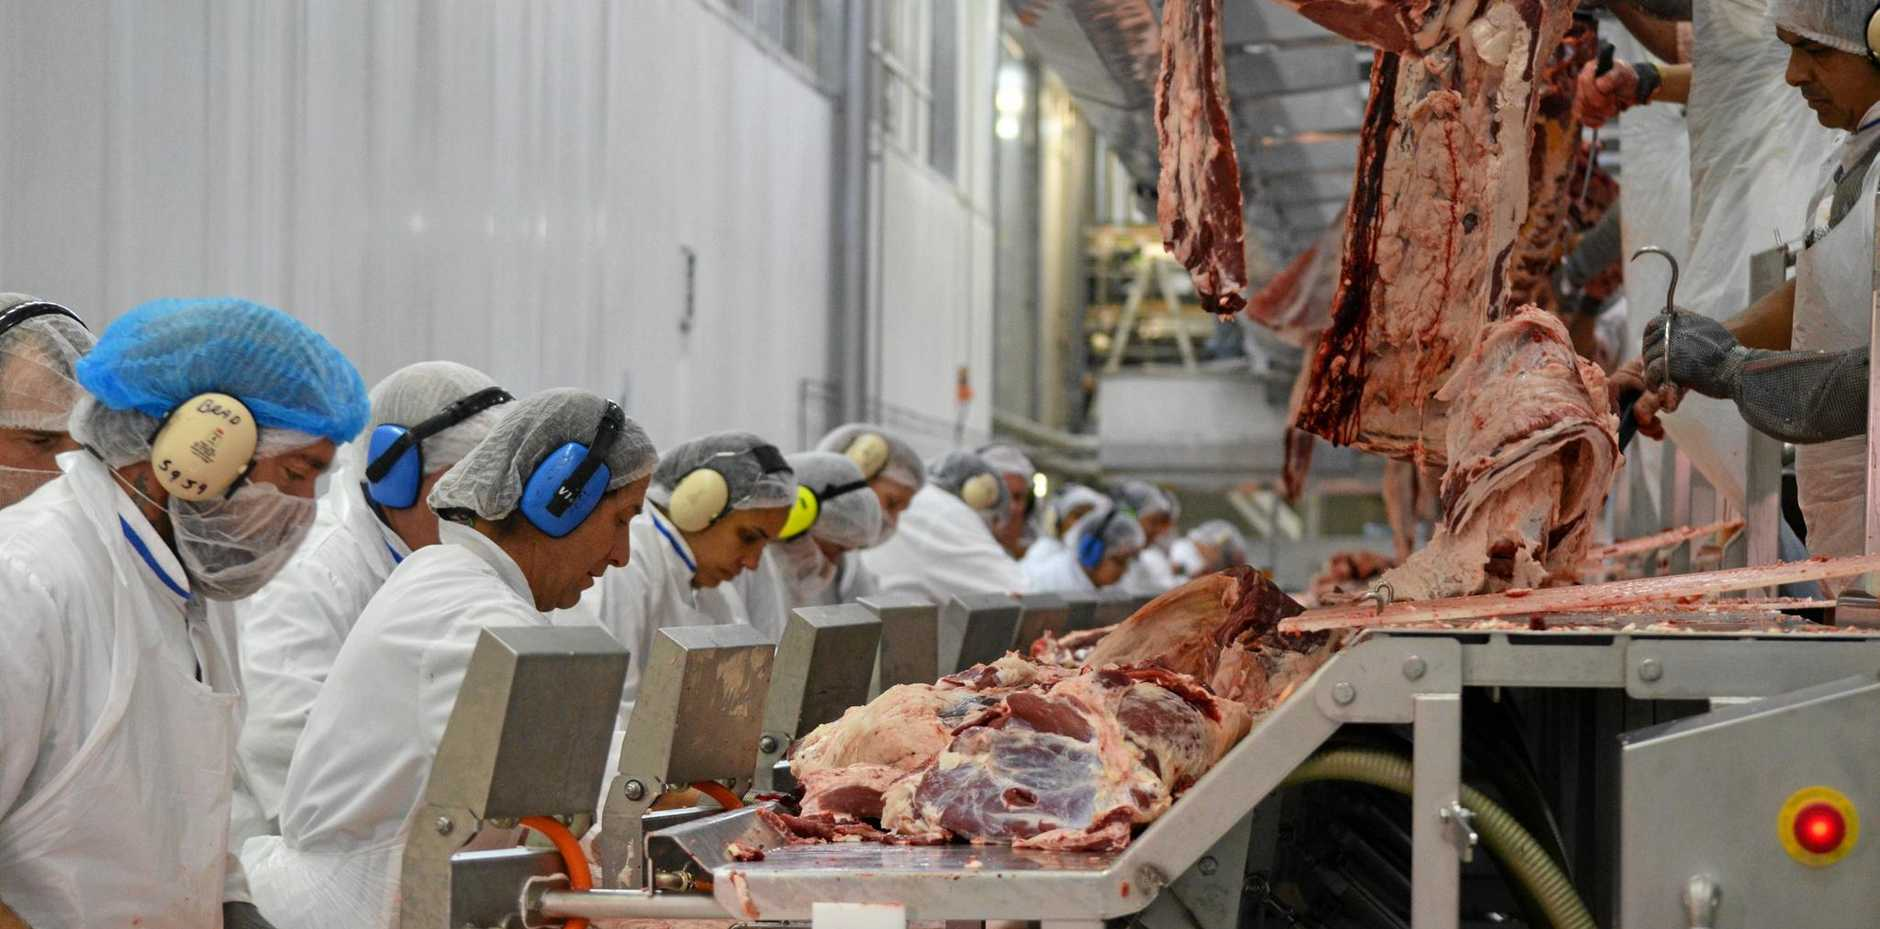 Workers in Oakey Beef Exports boning and packing room. There are more than 300 people employed within this section of the business.